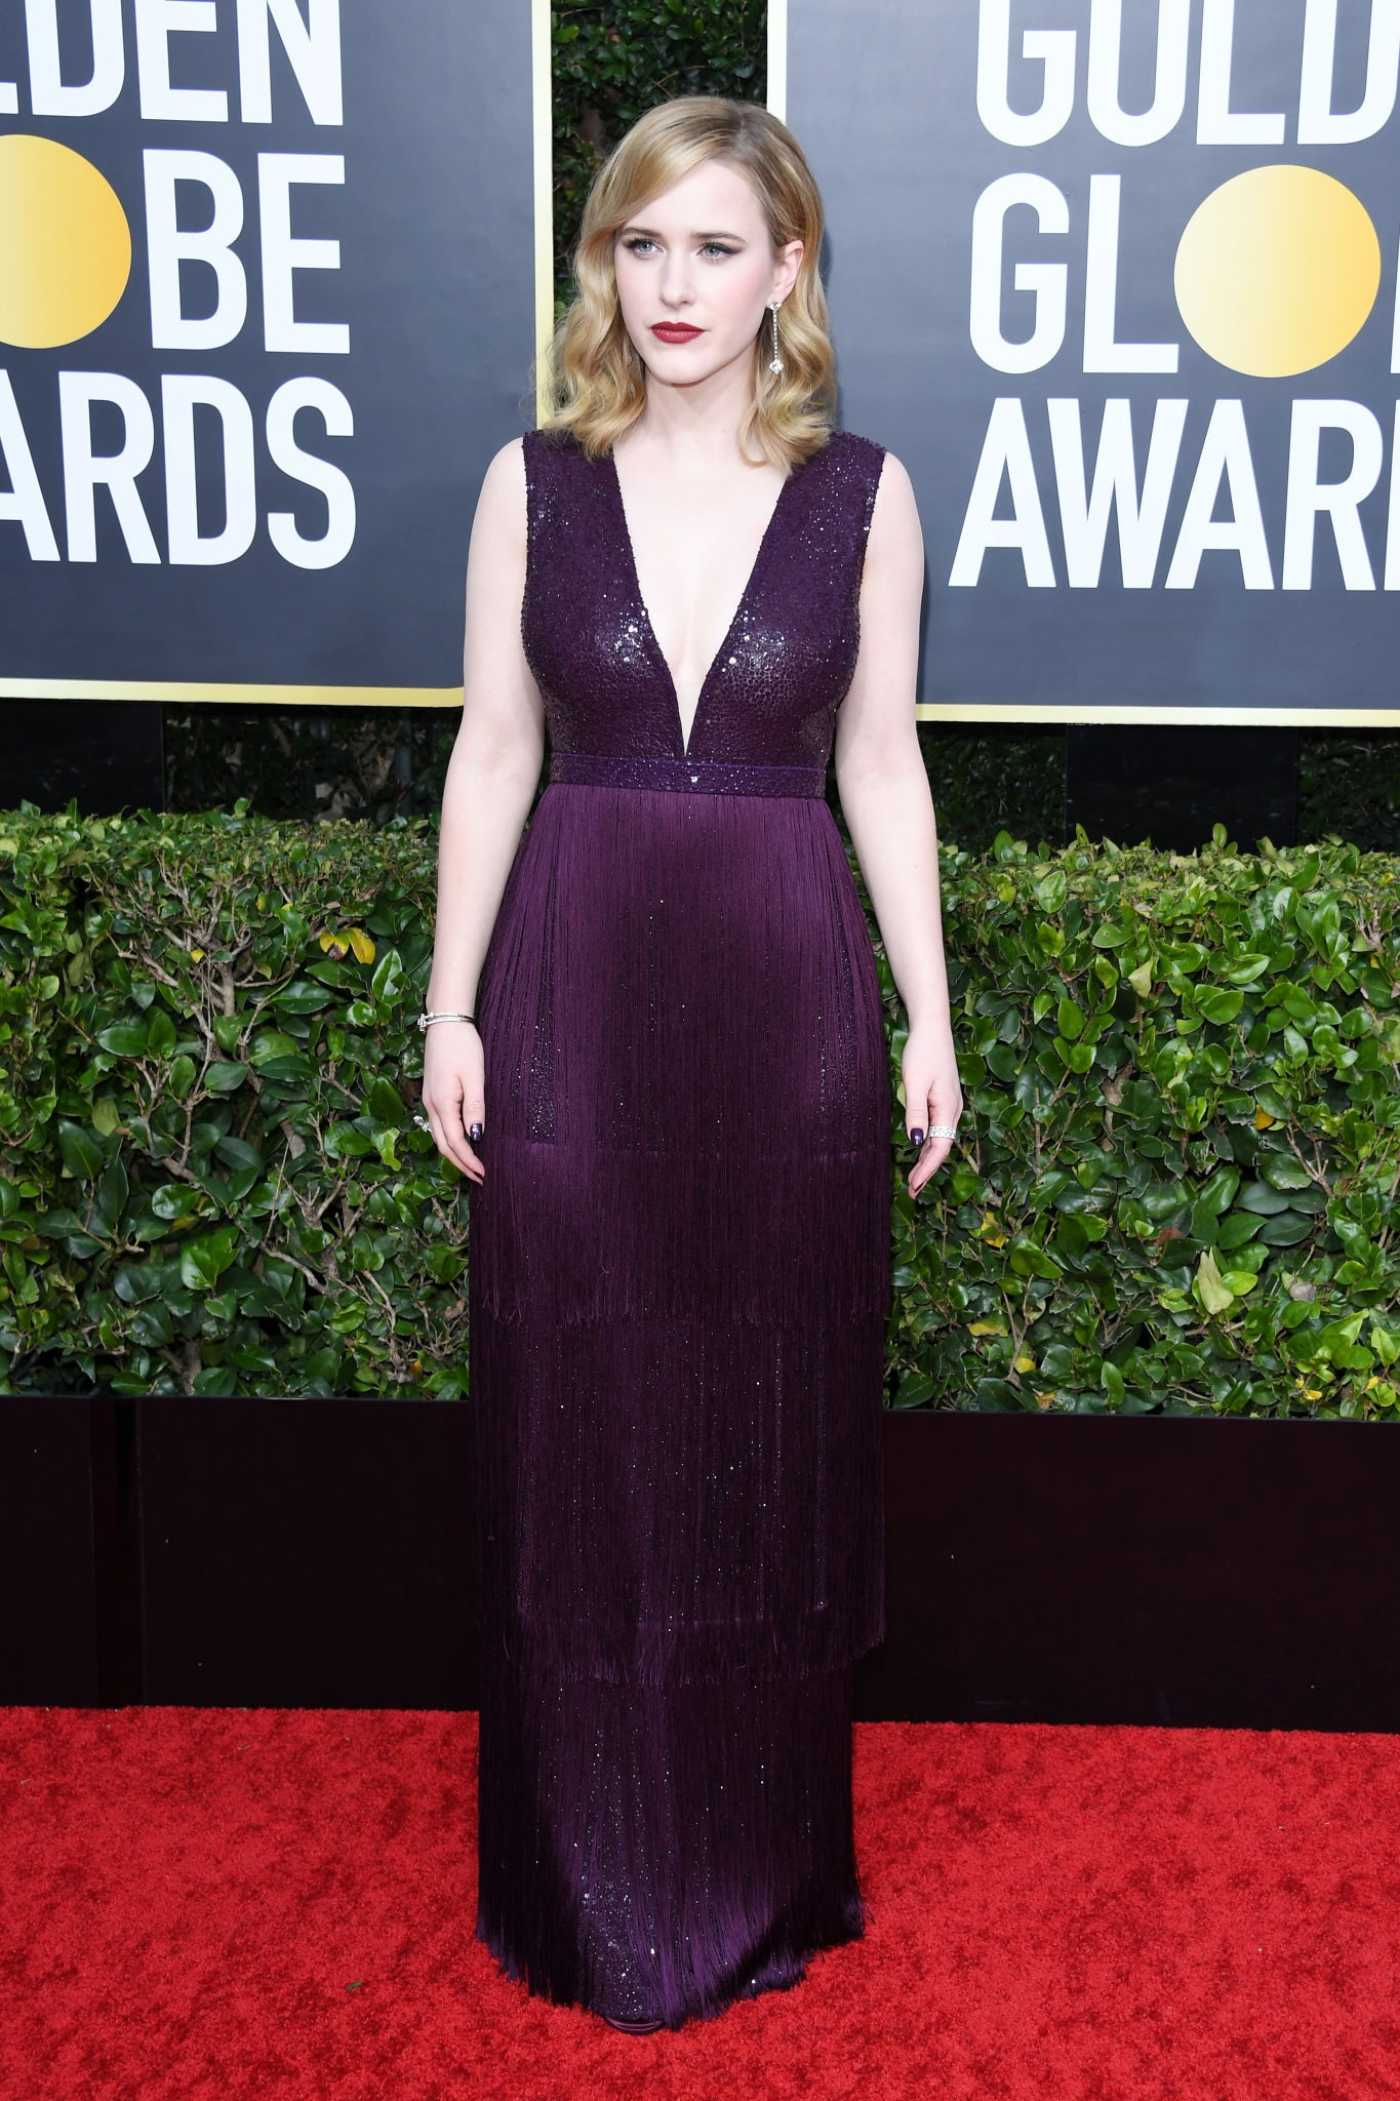 Rachel Brosnahan Attends the 77th Annual Golden Globe Awards at the Beverly Hilton Hotel in Beverly Hills 01/05/2020